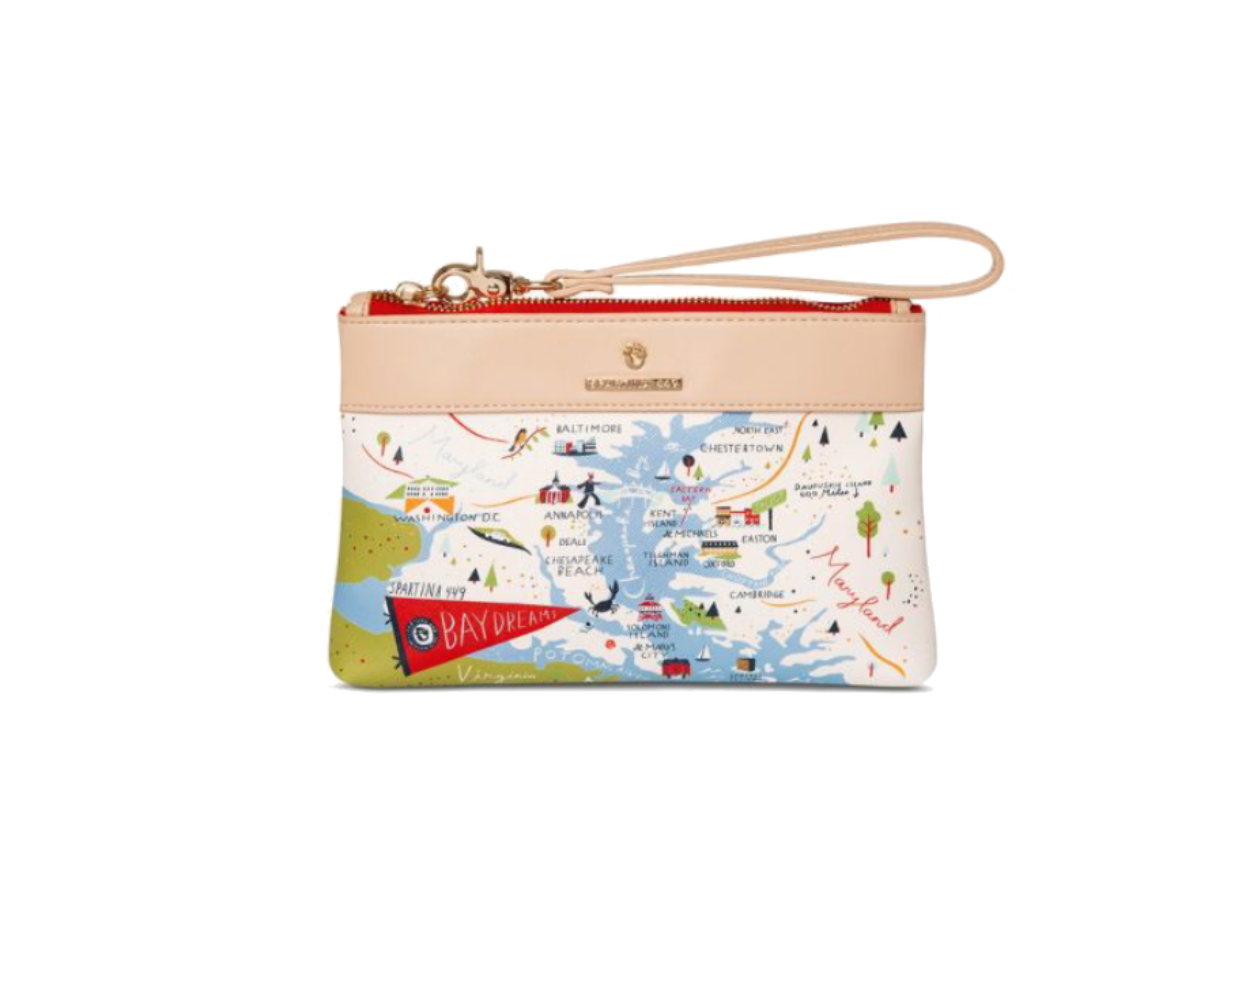 Spartina Bay Dreams Wristlet